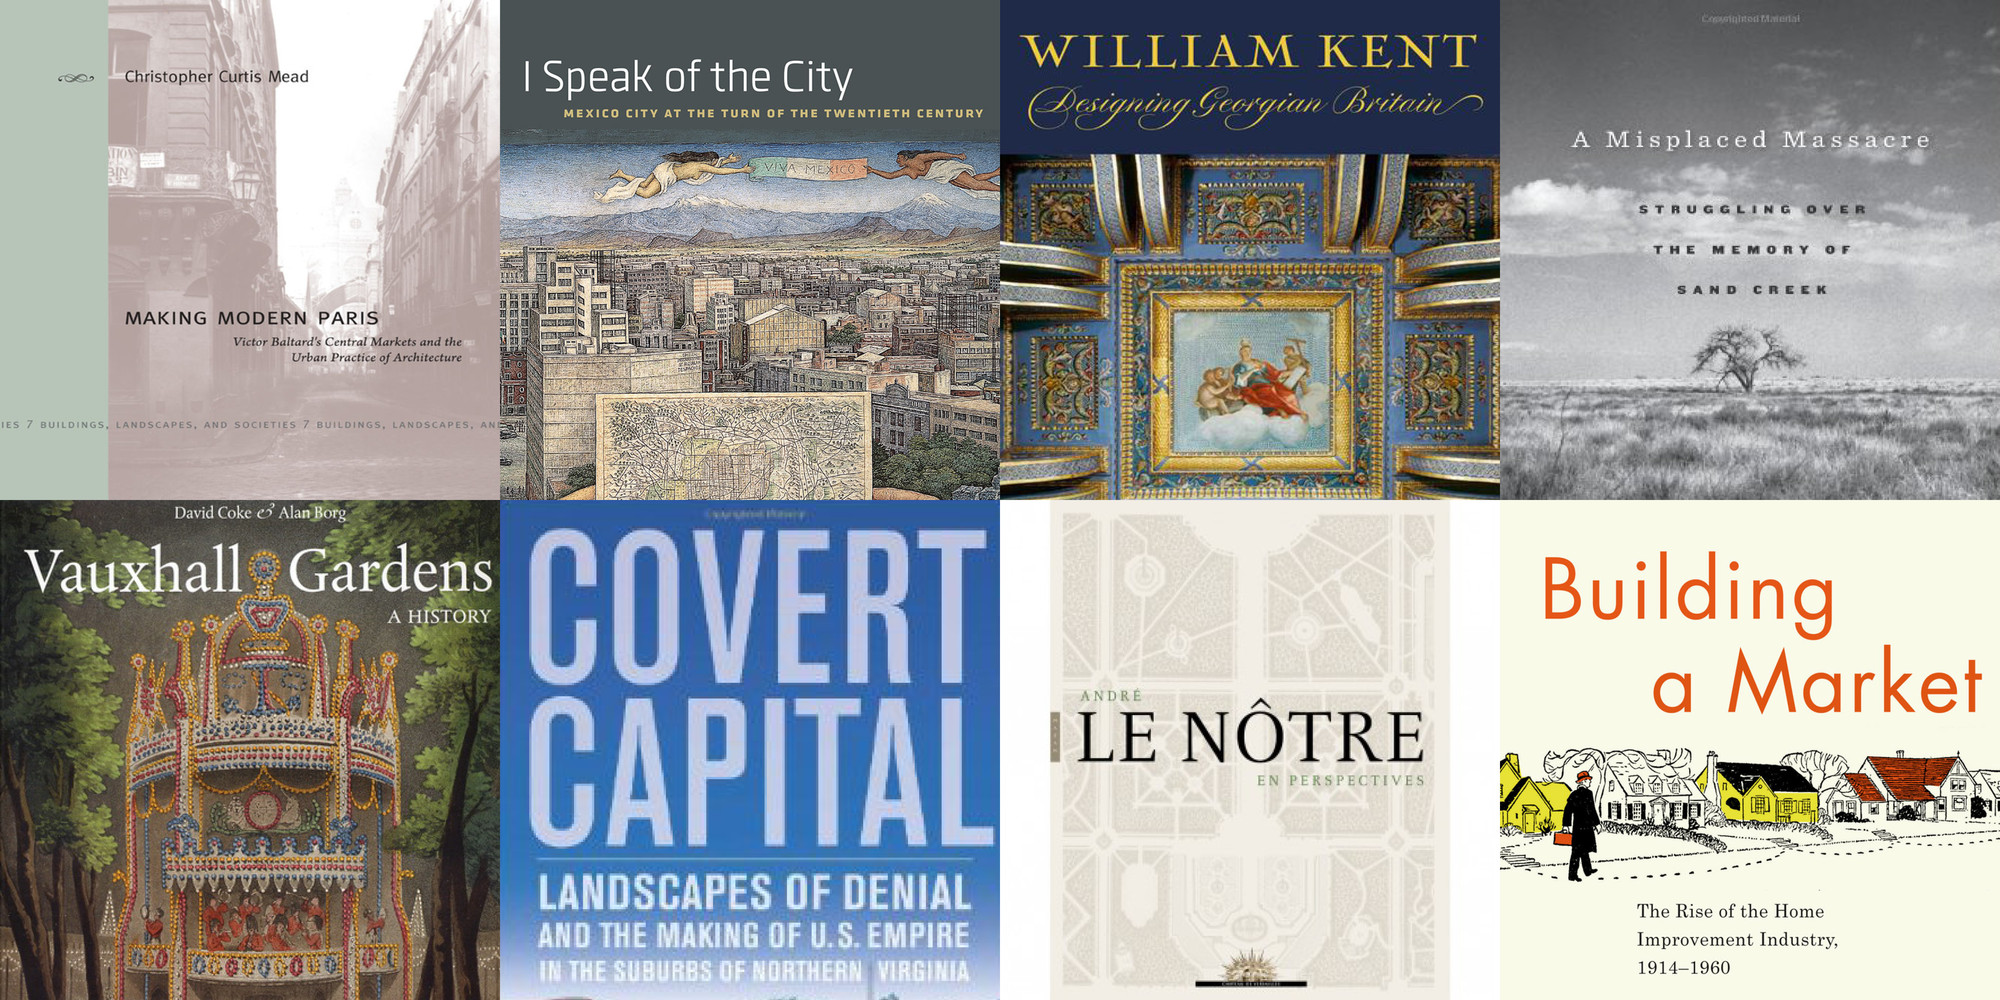 Society of Architectural Historians Announces 2015 Publication Award Recipients, Courtesy of Society of Architectural Historians